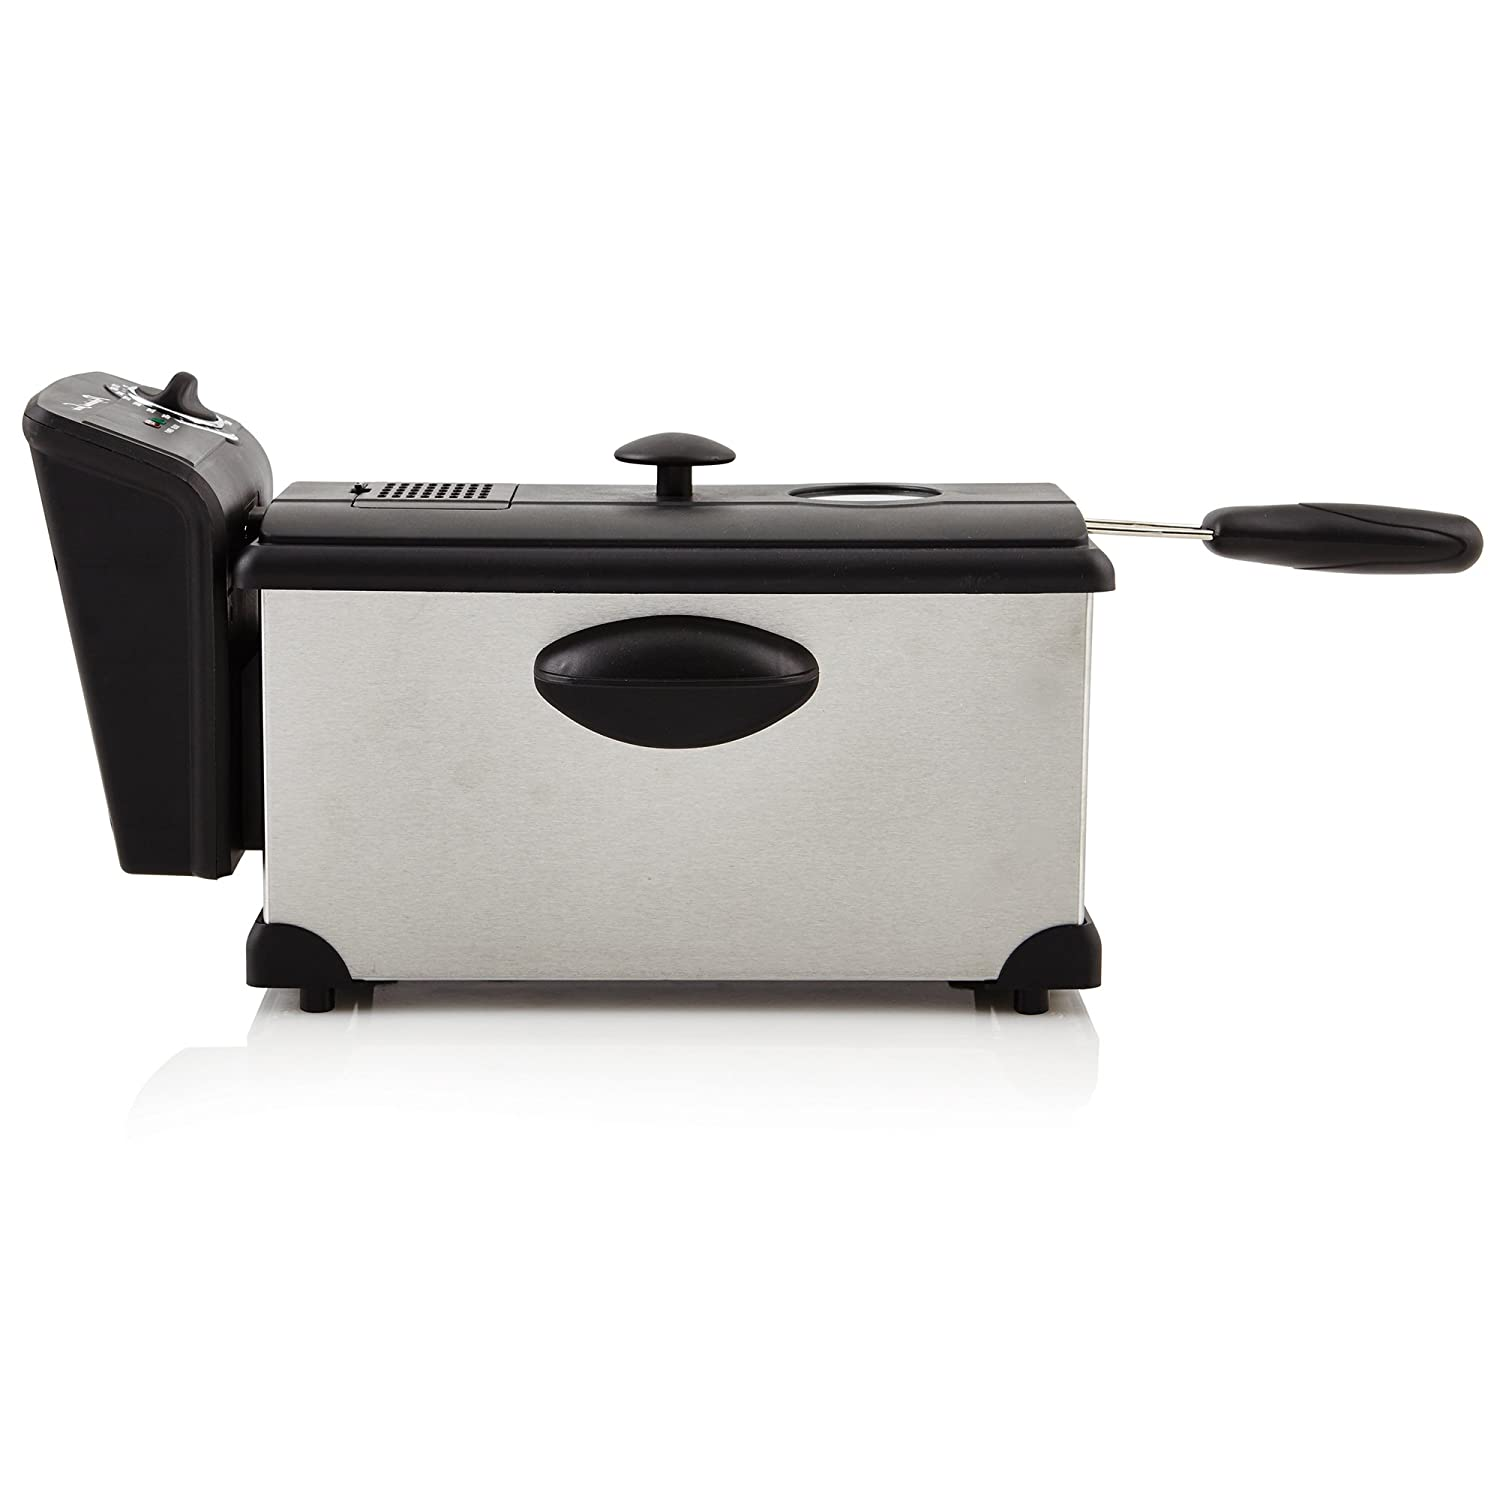 Continental Electric PS75911 Electric Deep Fryer 3 Liter Silver